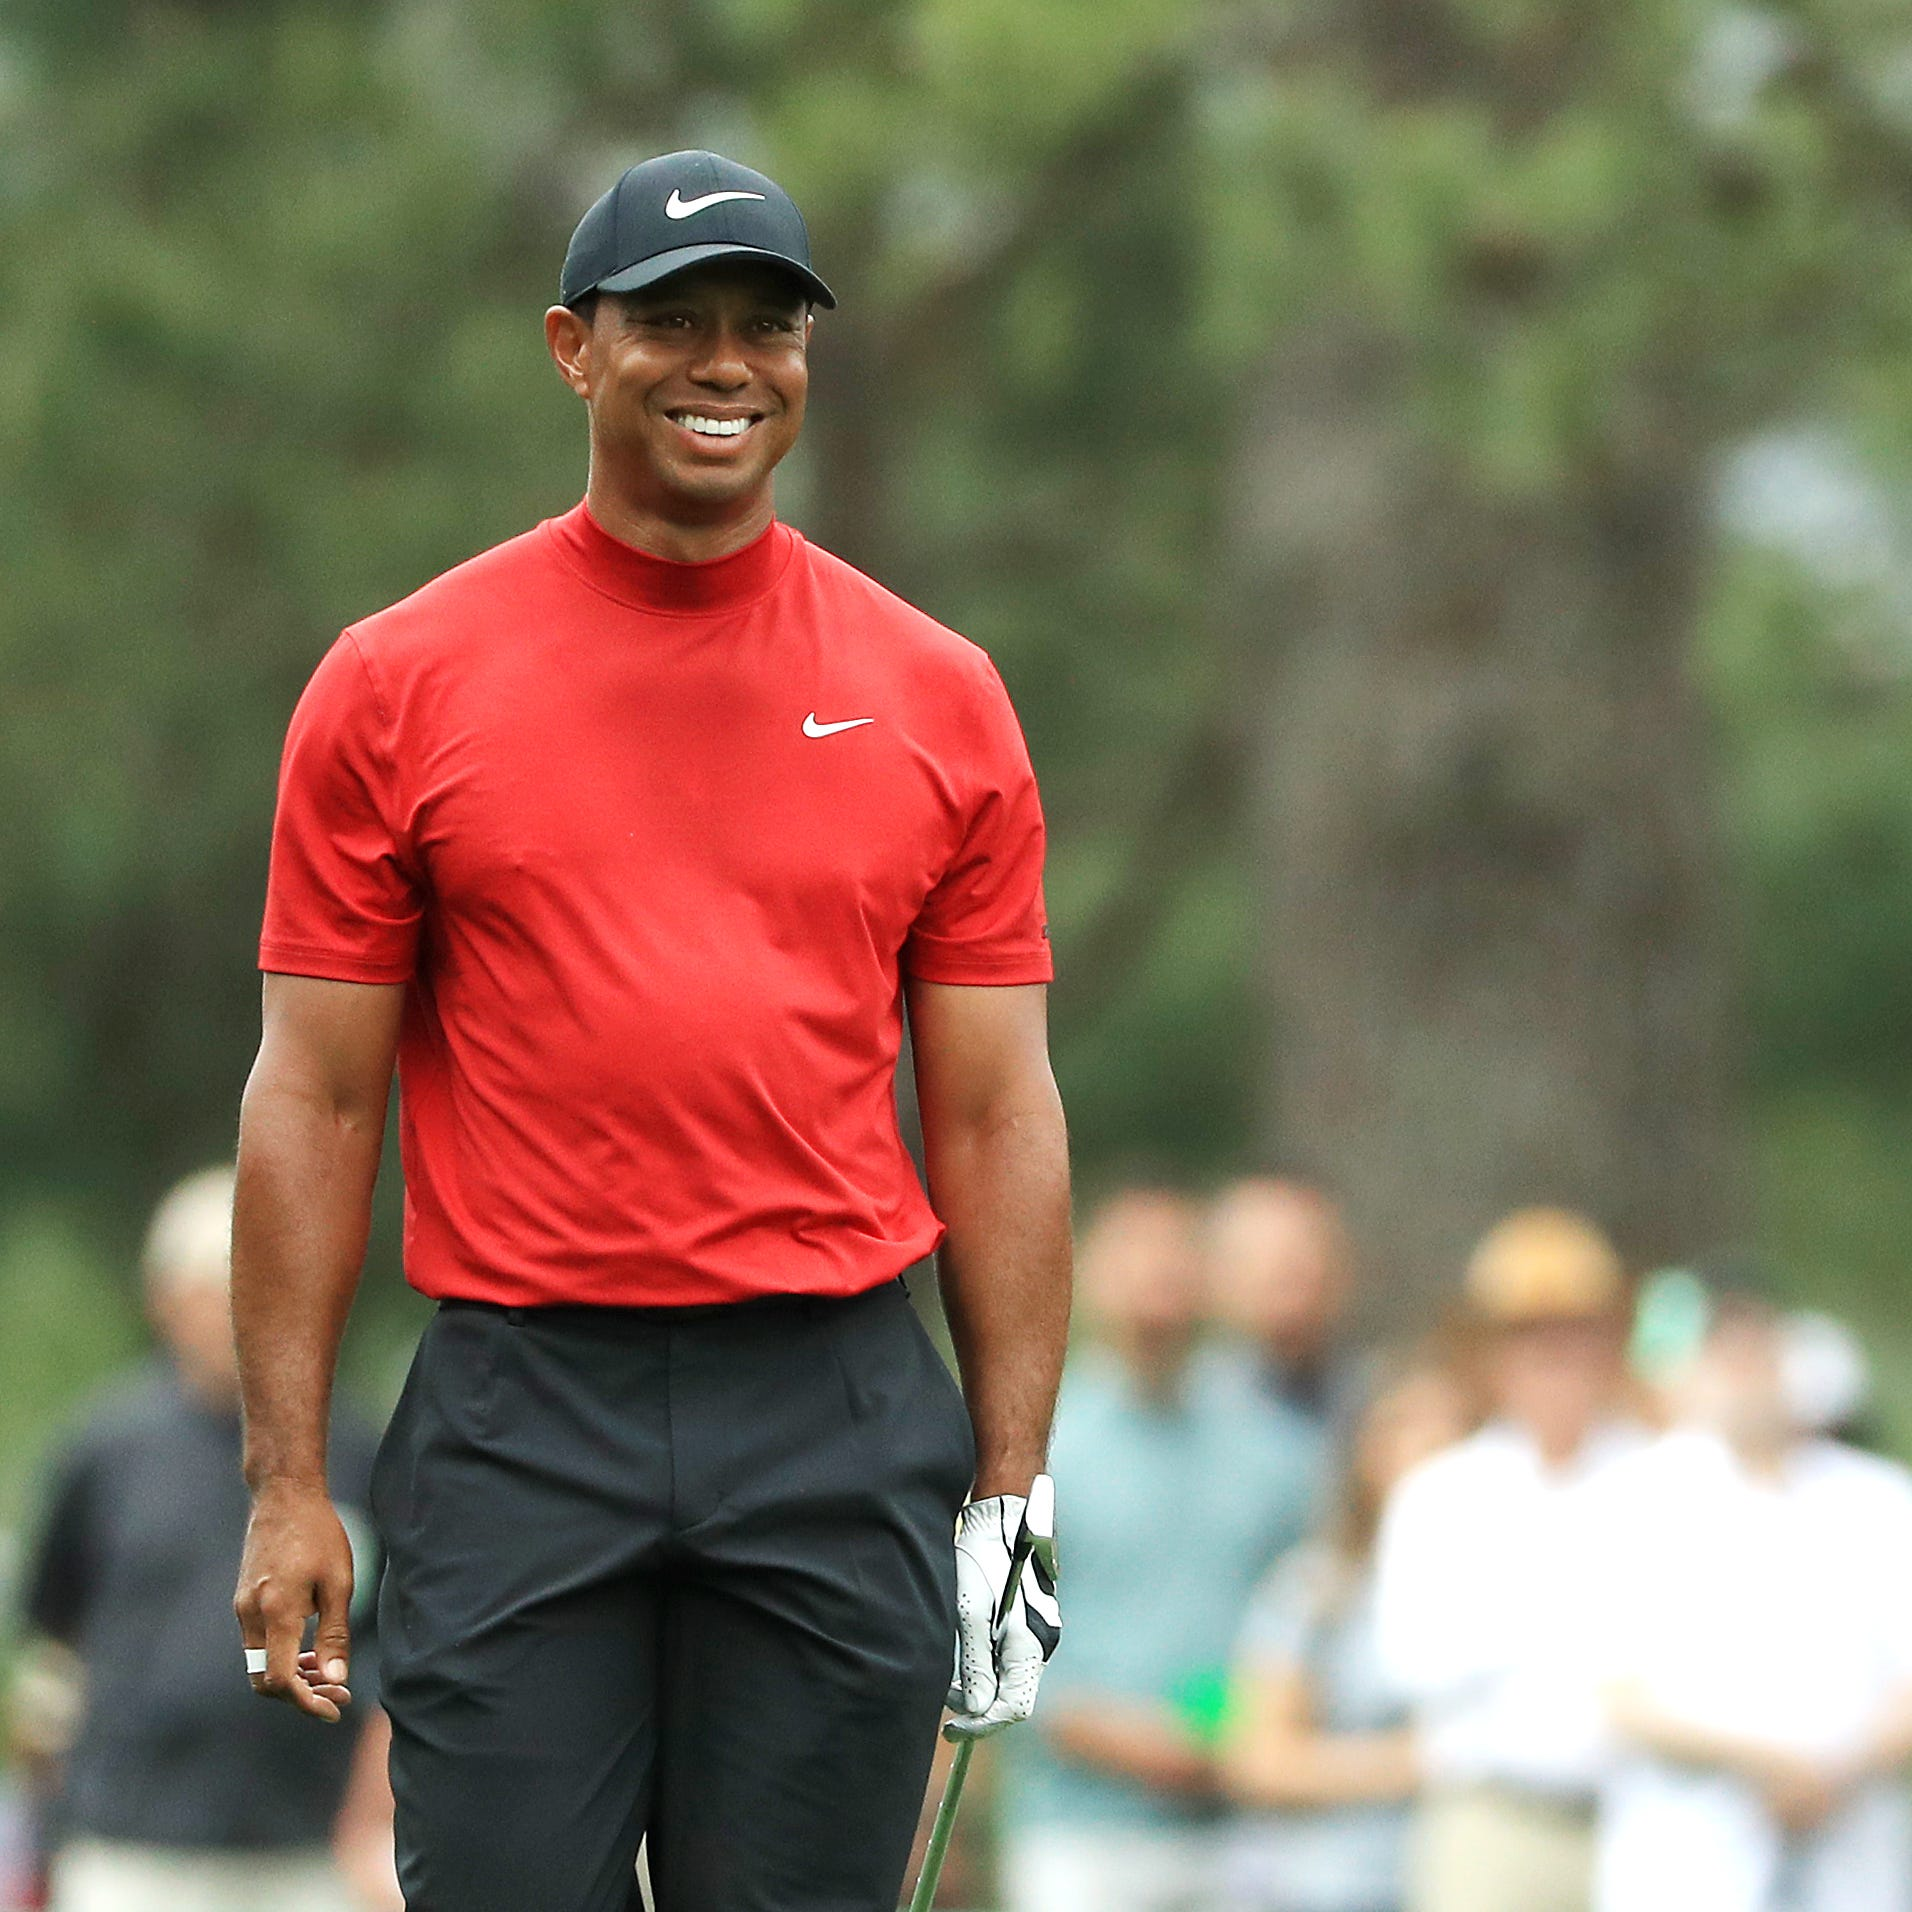 Simply remarkable: Tiger Woods' return to Masters glory one of greatest in sports history